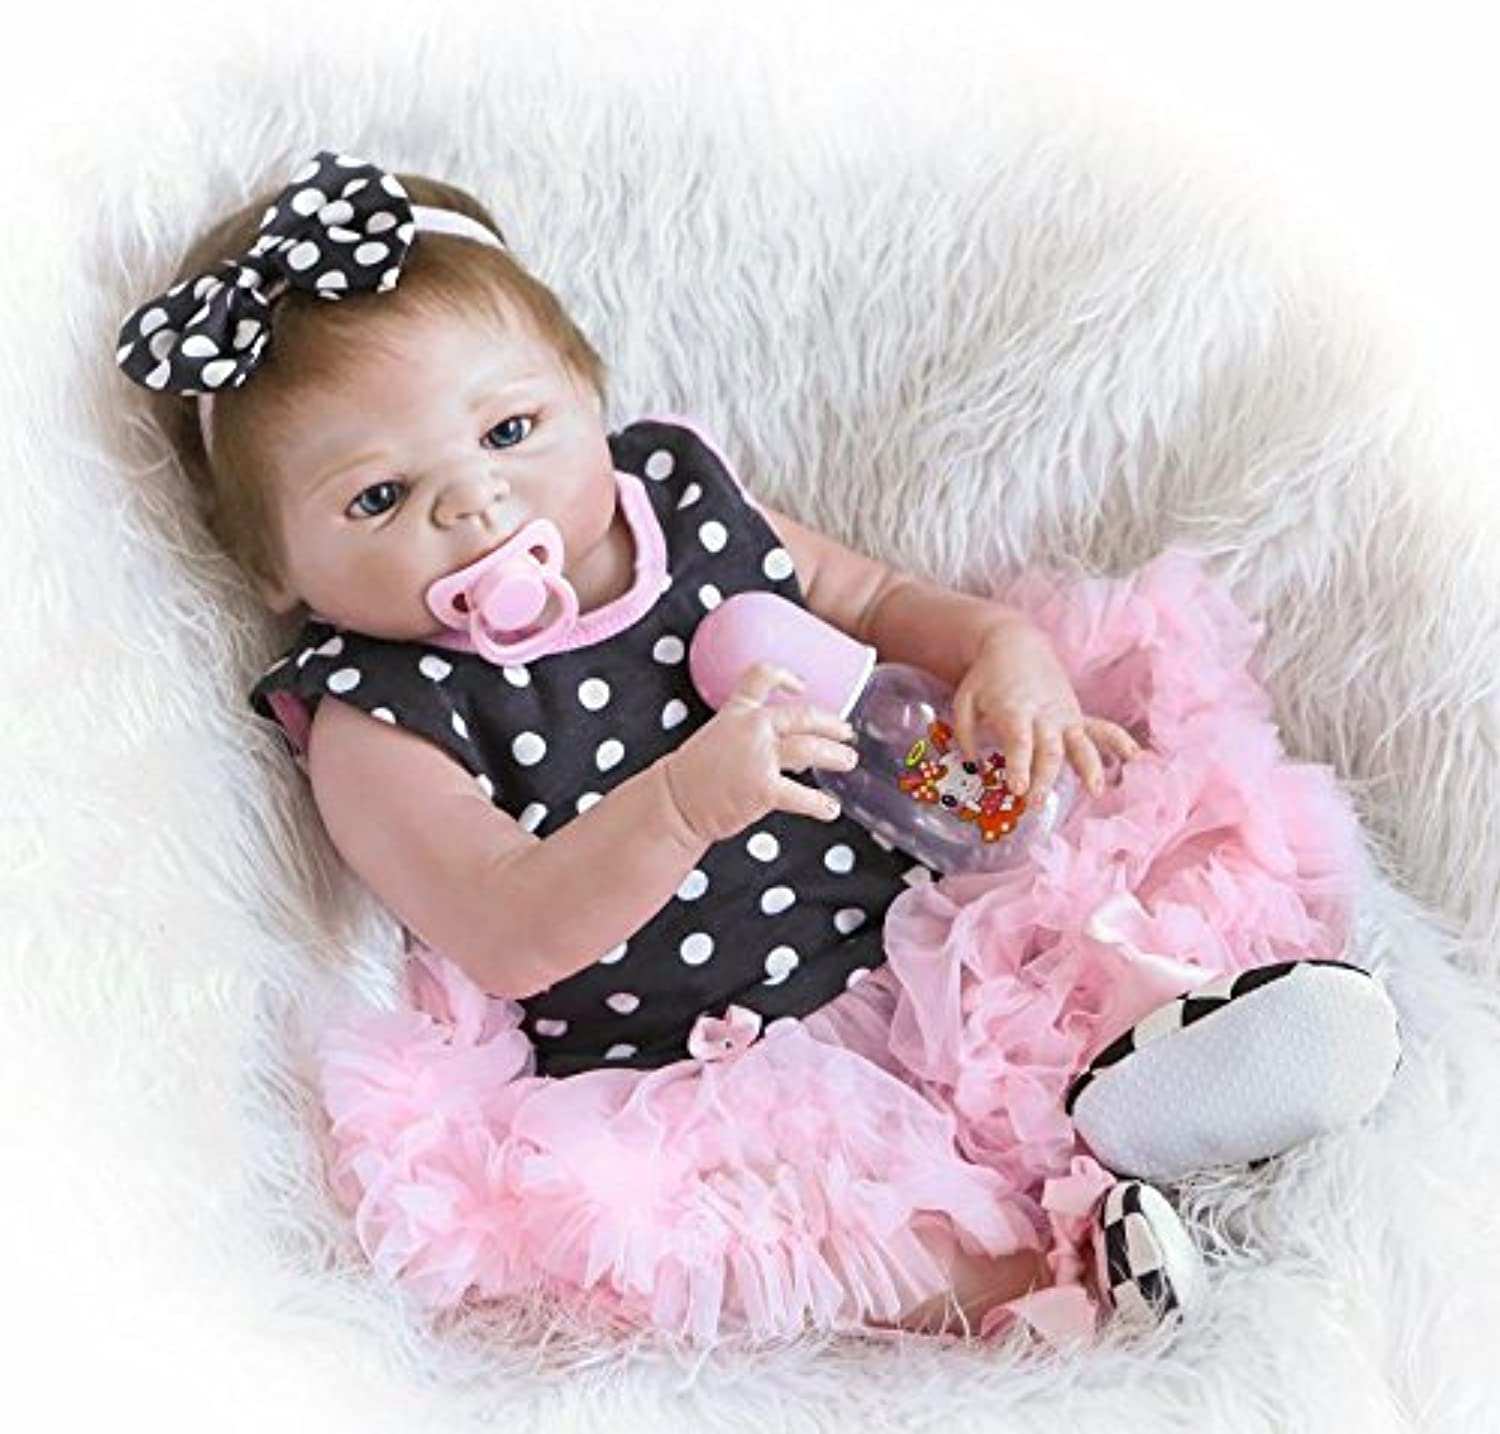 ZIYIUI 18 Inch 45cm Magnetic Mouth Realistic Looking Full Body Vinyl Silicone Baby Dolls Simulation Newborn Lifelike Baby Girl Toddler Gift Toy